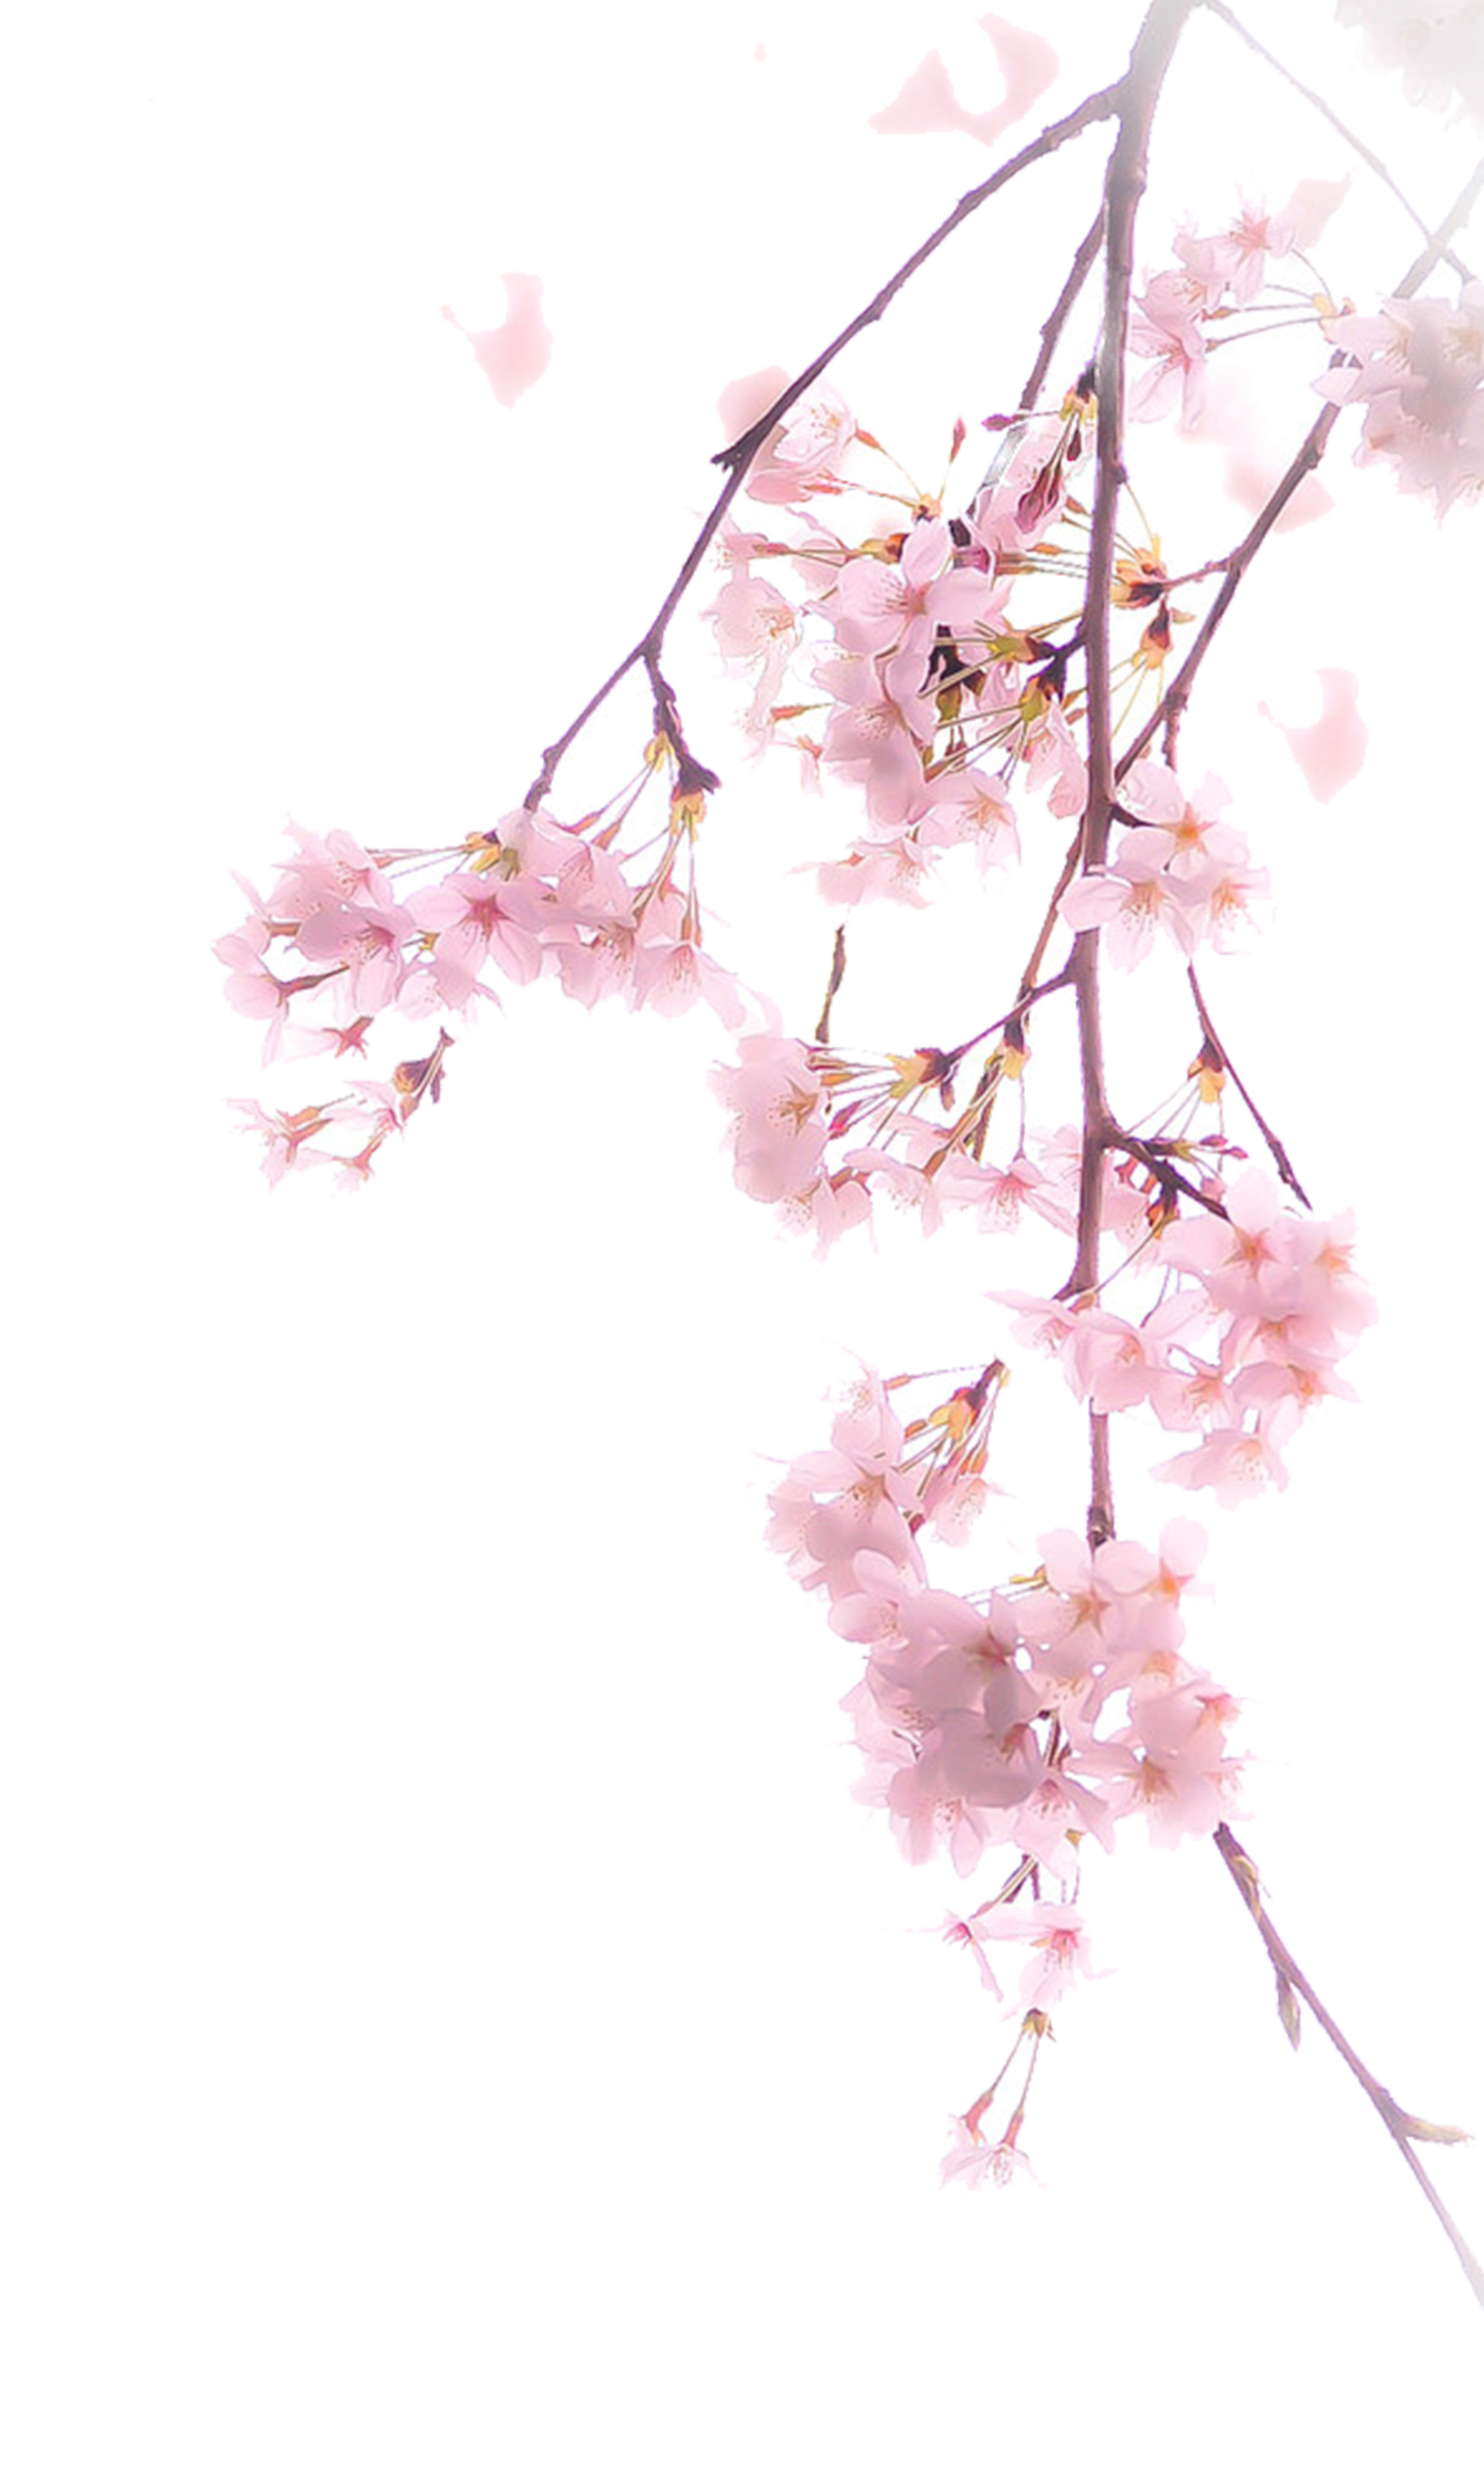 Cherry blossom branch png. Download illustration a transprent